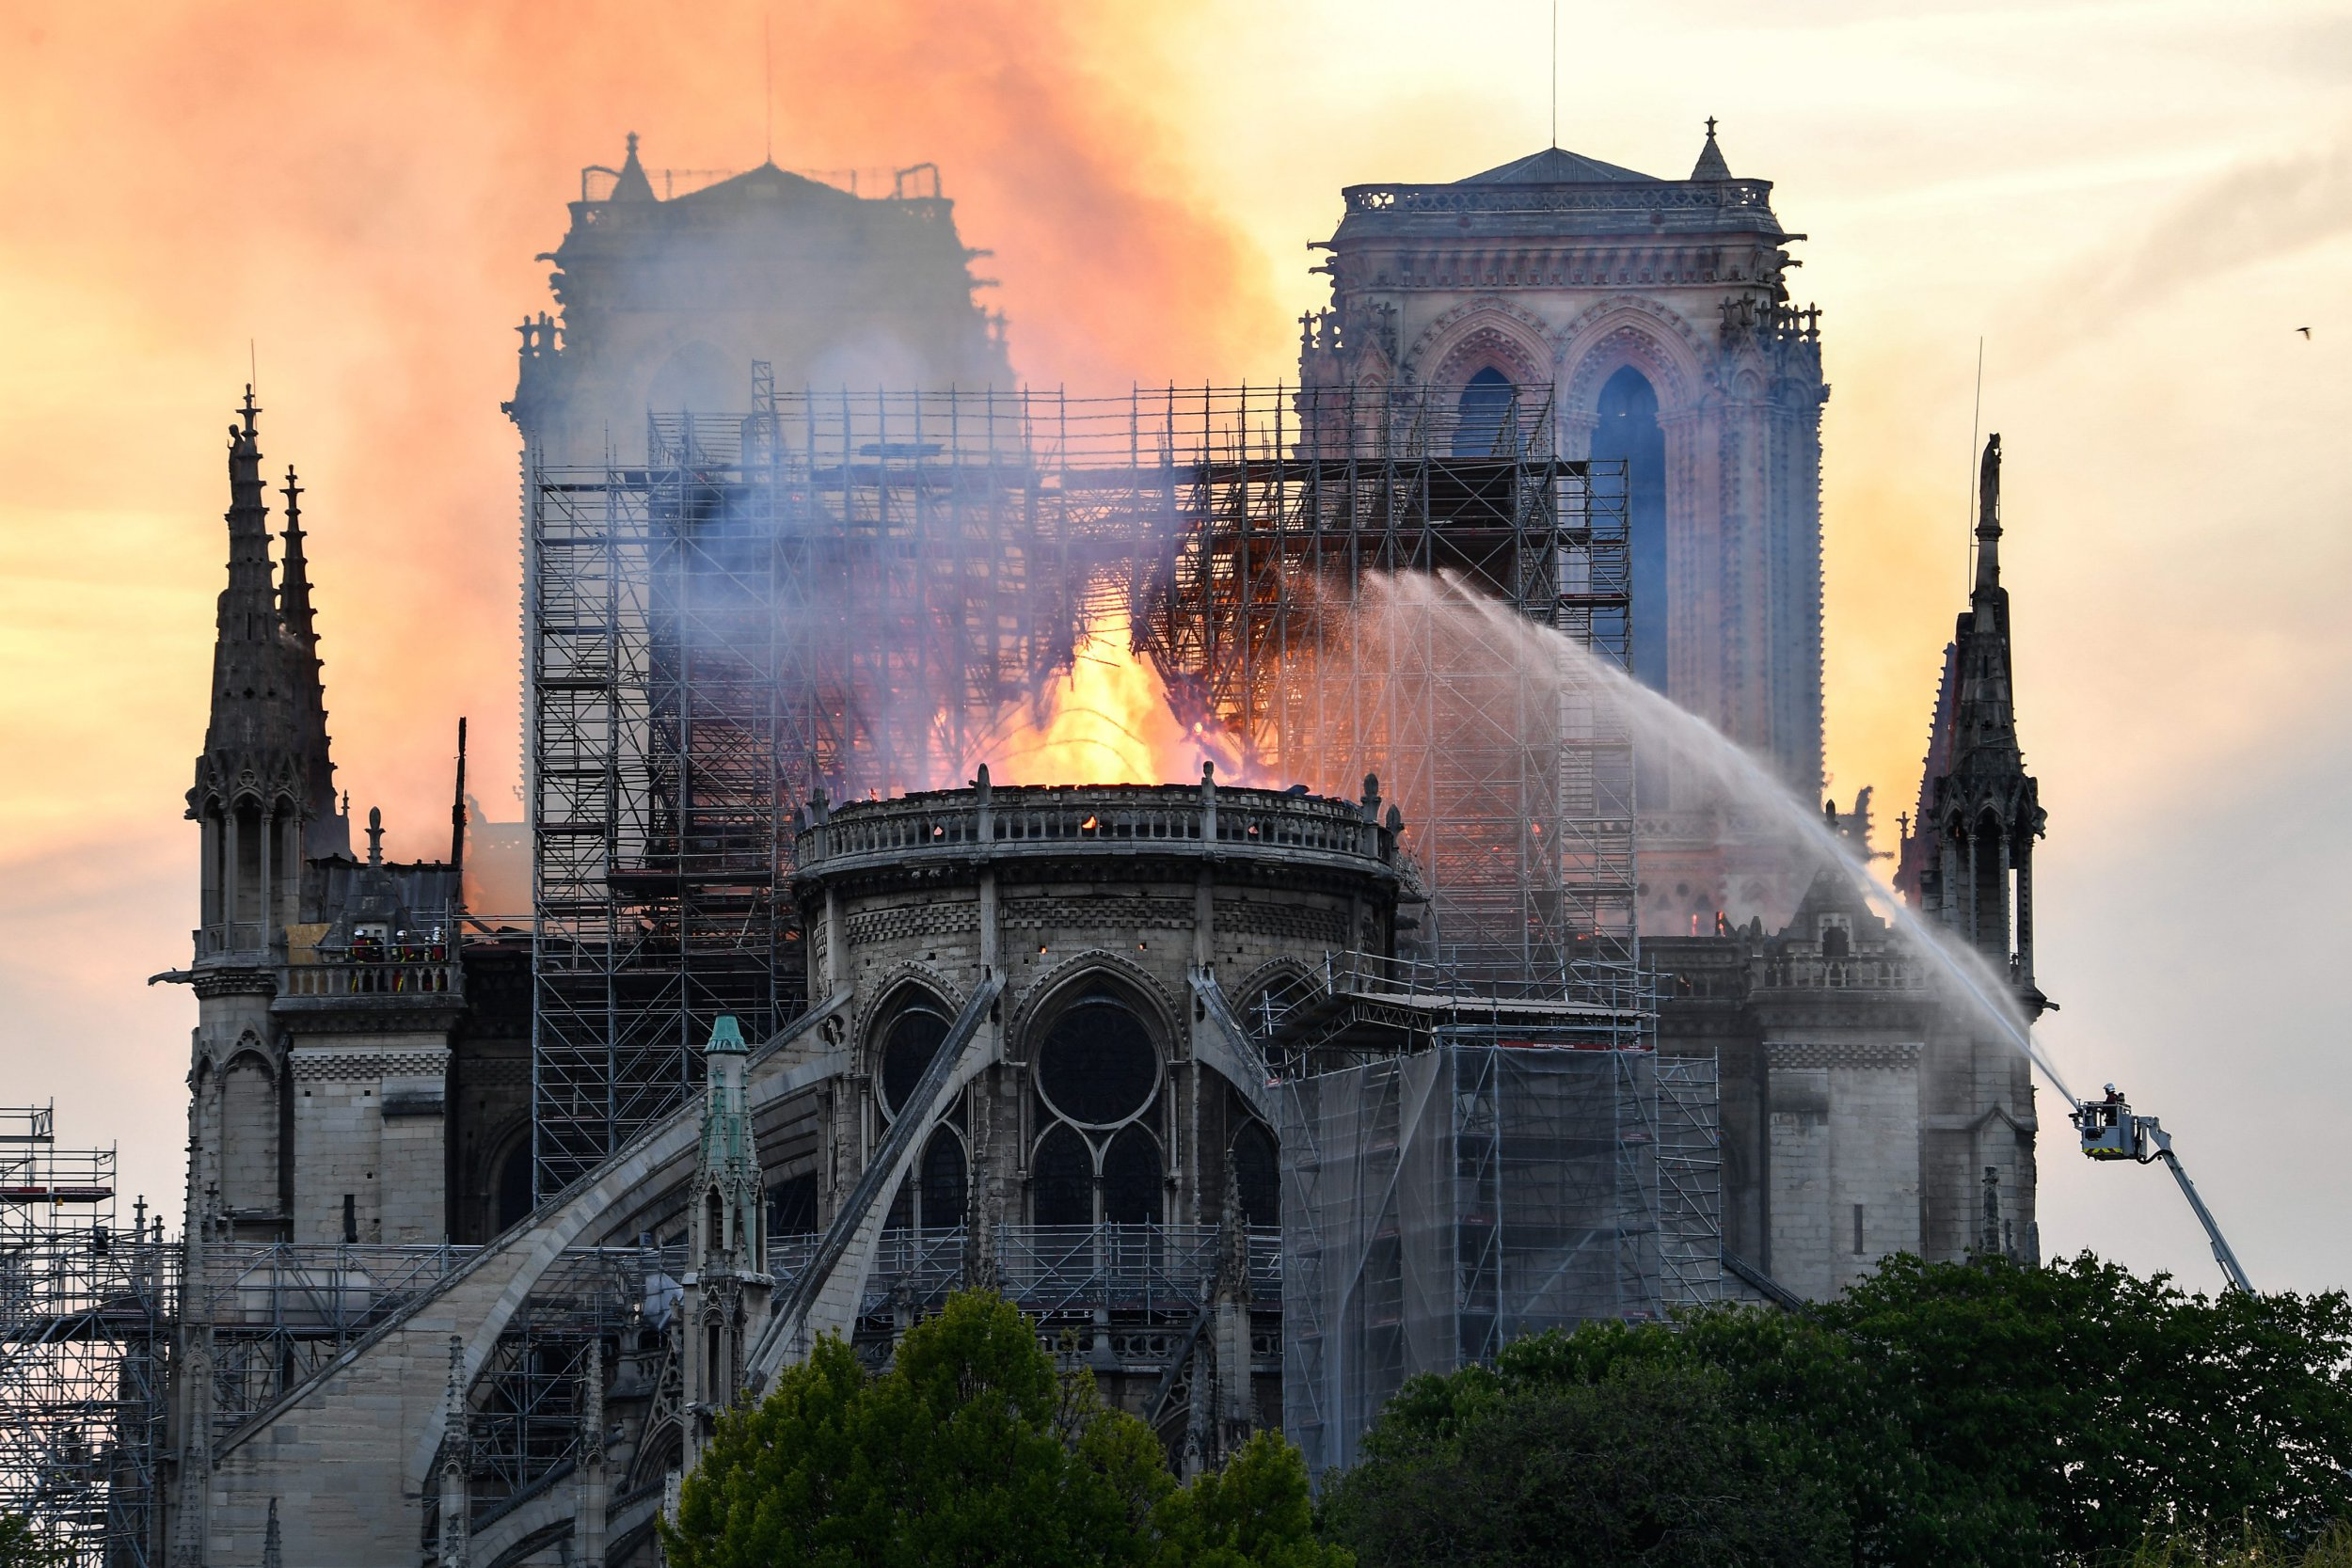 Anger at fundraiser for Notre Dame instead of homeless Parisians